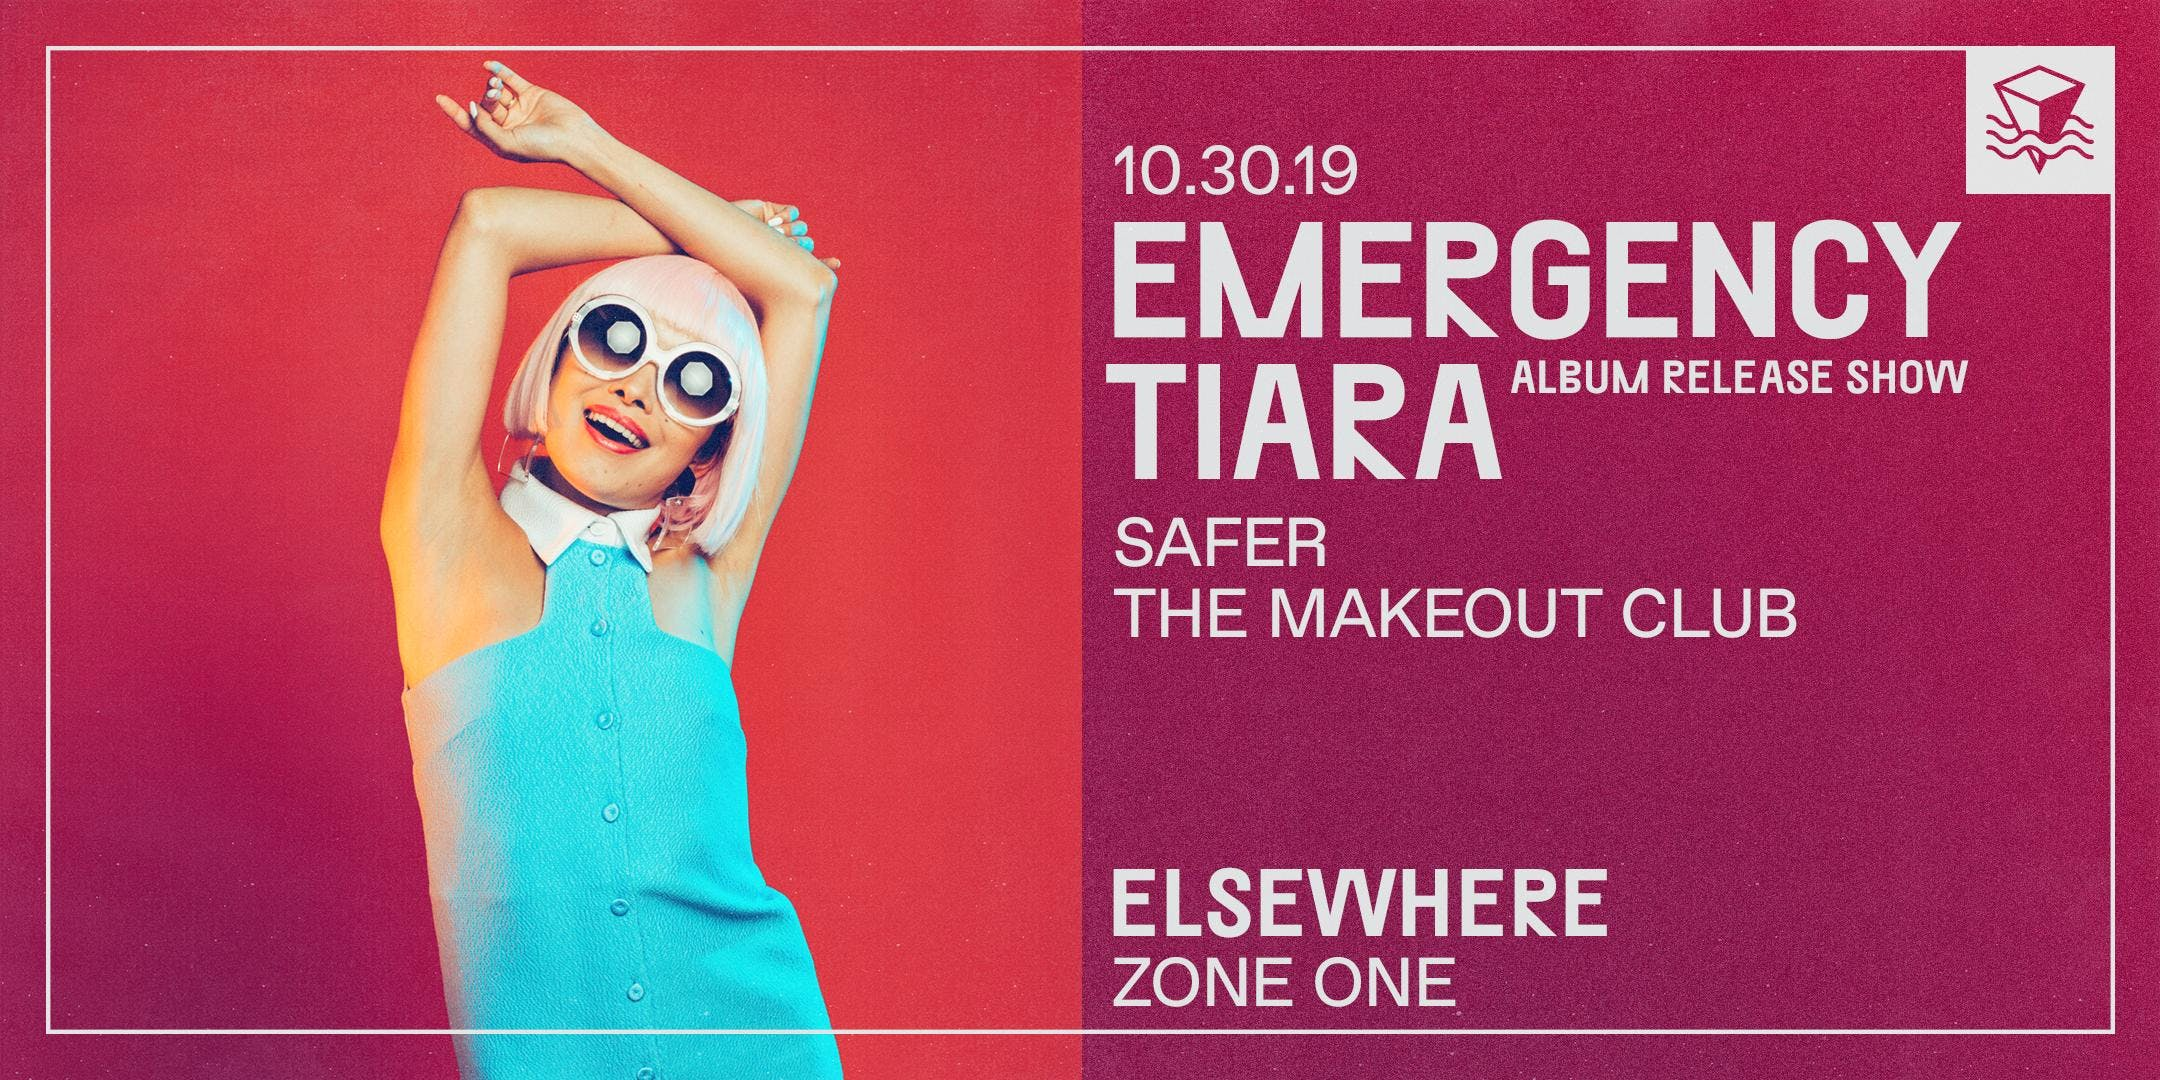 Emergency Tiara (Album Release Show!)